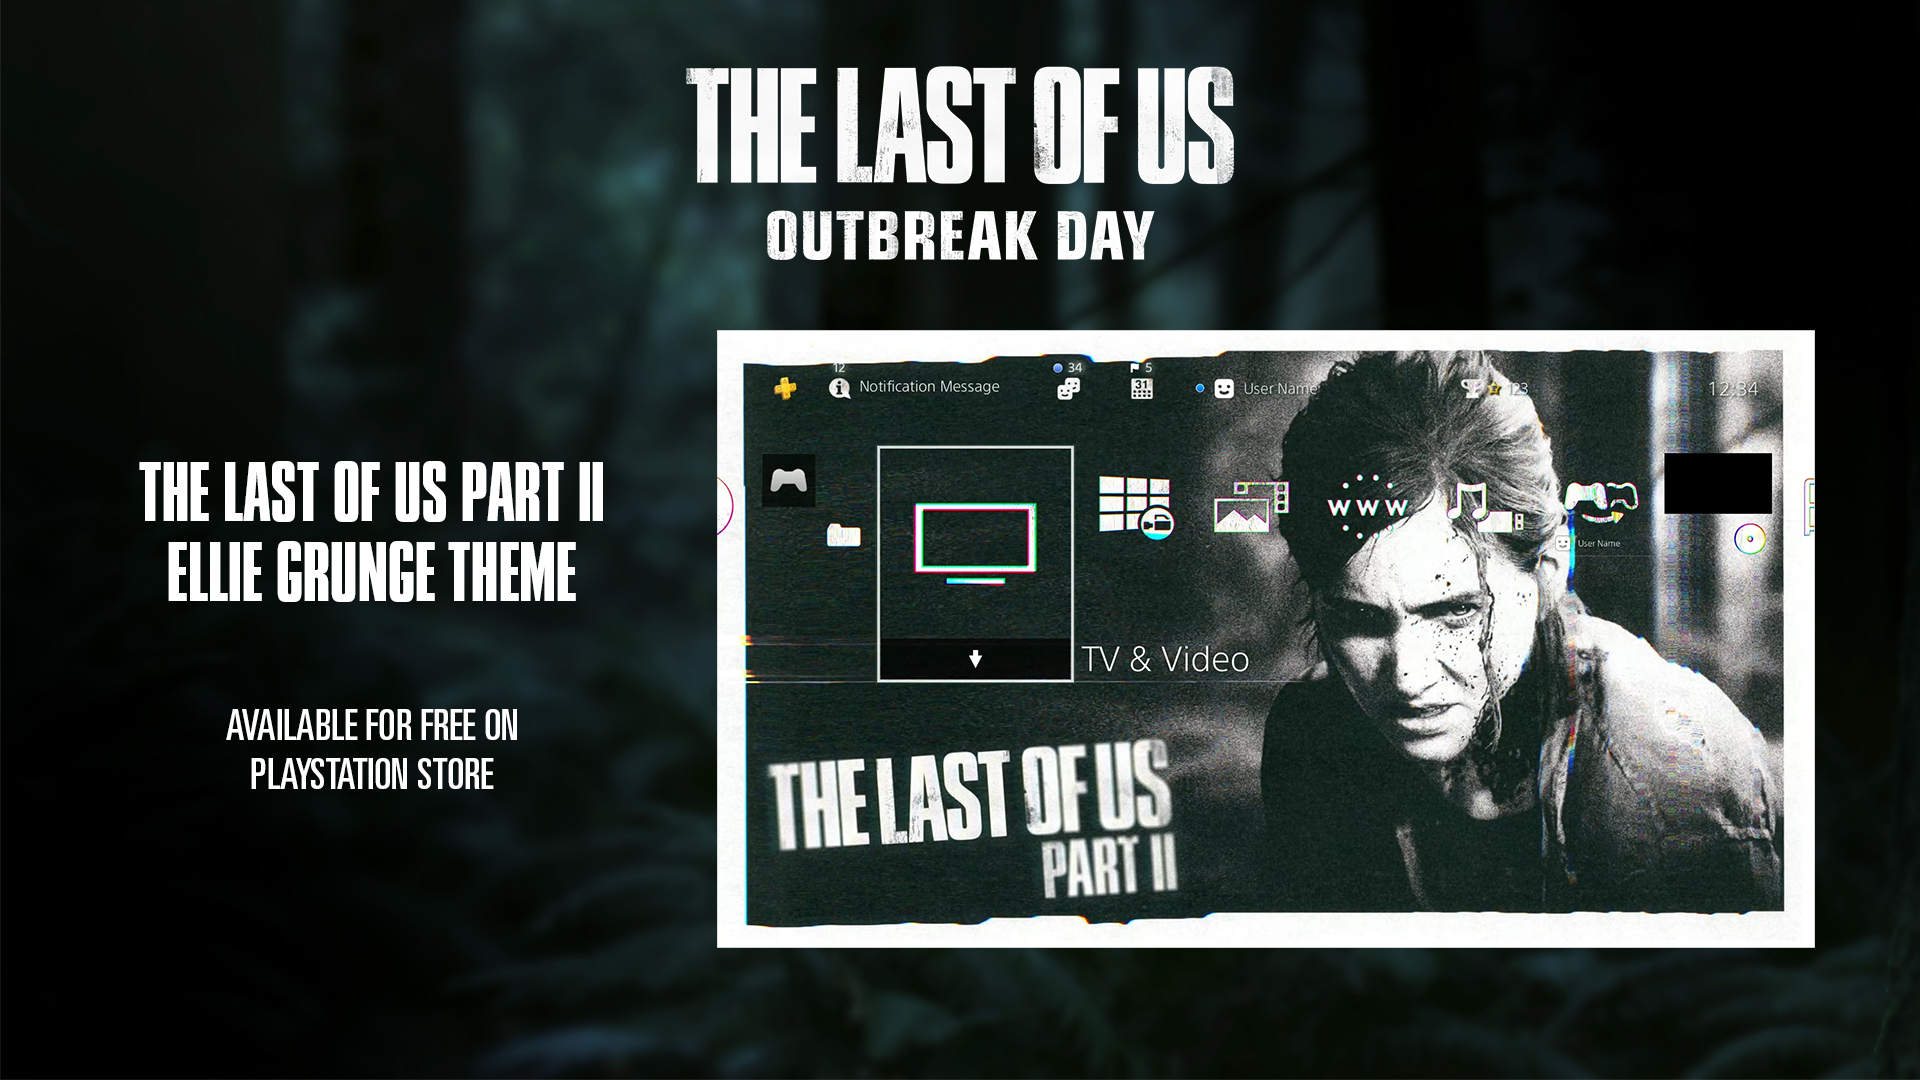 The Last of Us Part II: Outbreak Day 2019 - Image 6